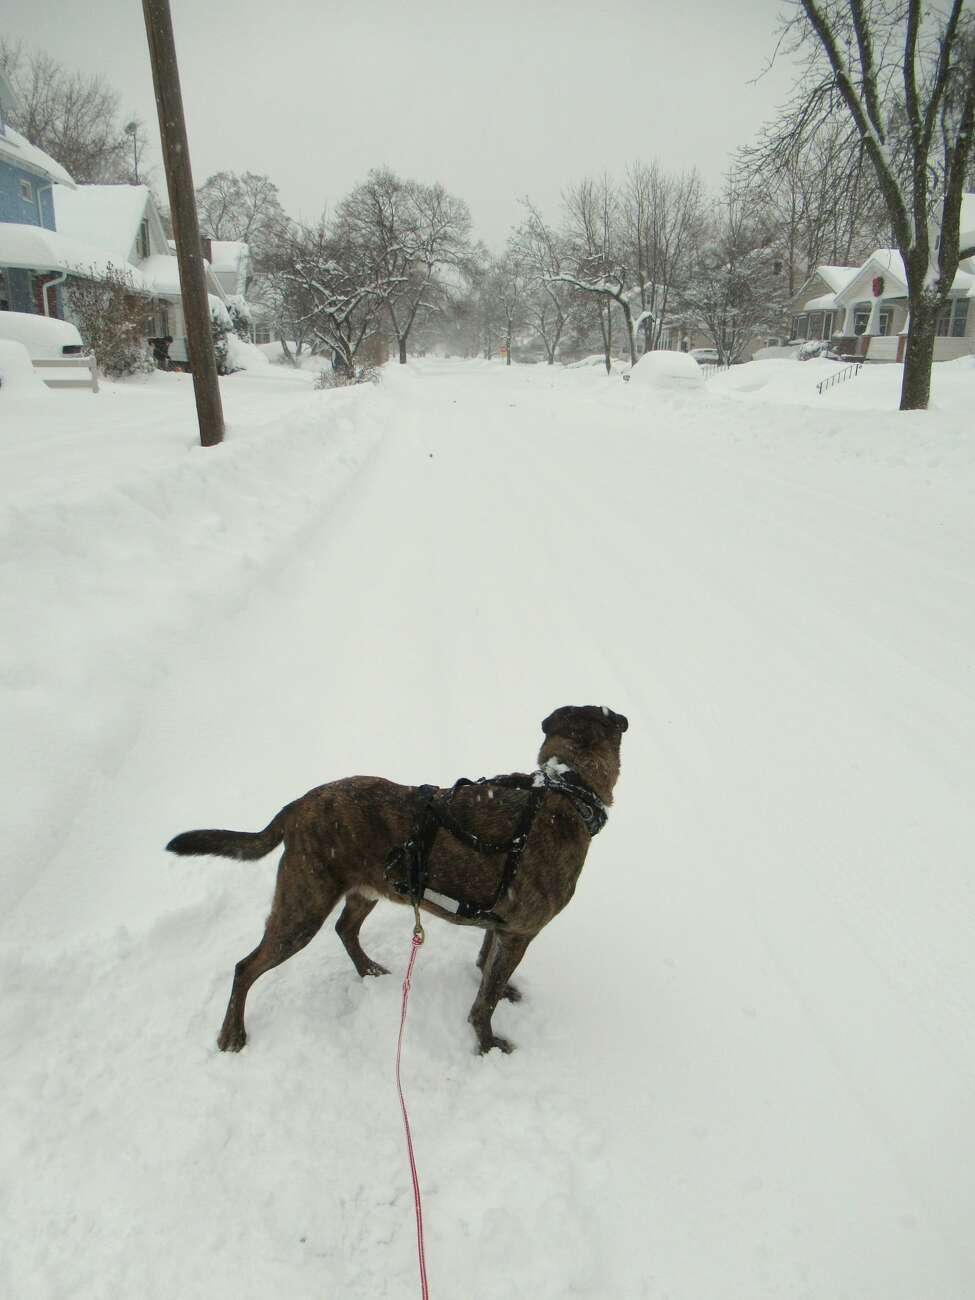 Rocky the dog during a ski outing on Schenectady streets. (Gillian Scott / Special to the Times Union)